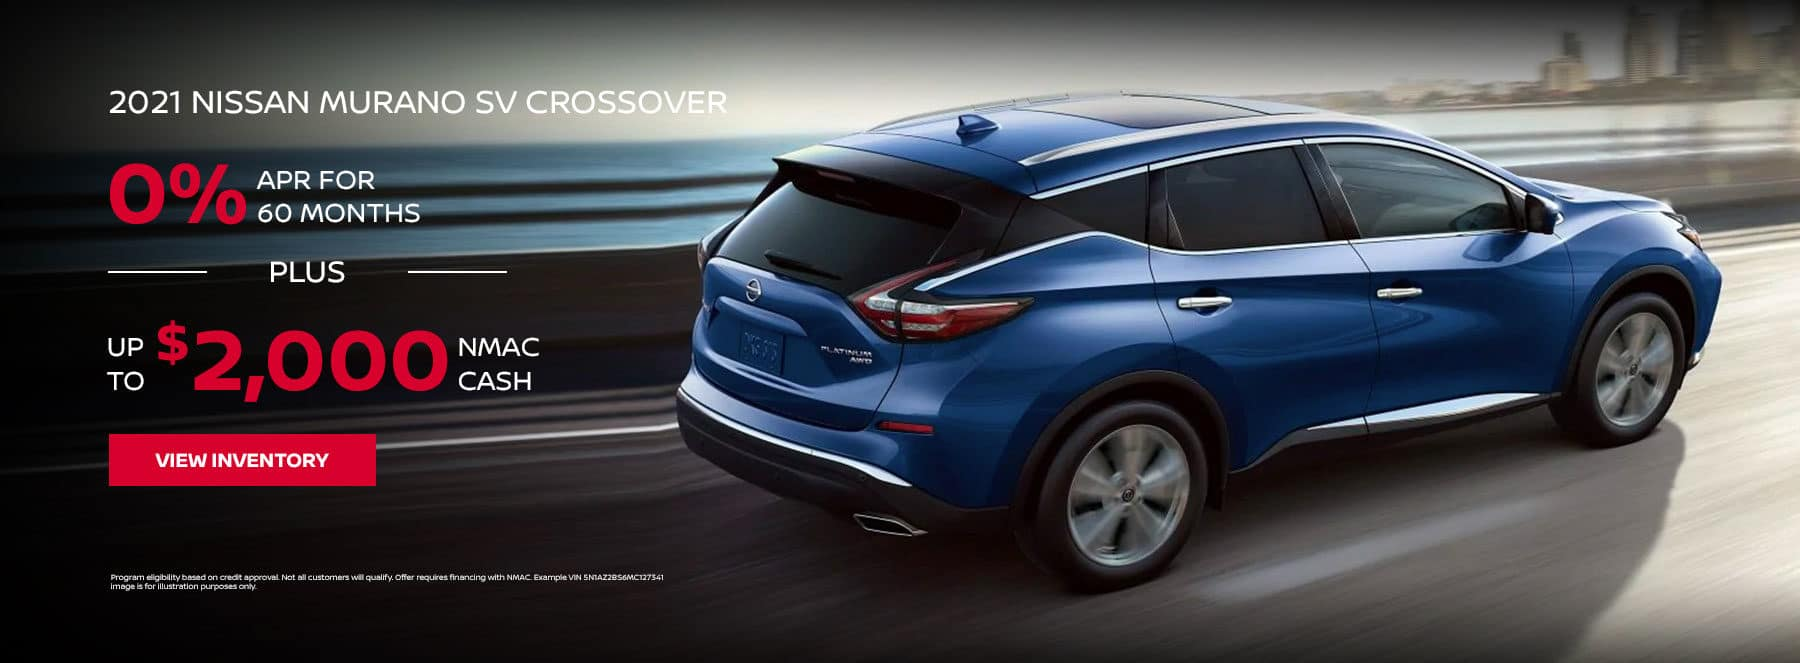 2021 NISSAN MURANO SV CROSSOVER, FINANCE FOR 0% APR For 60 Months + Up to $2,000 NMAC Cash